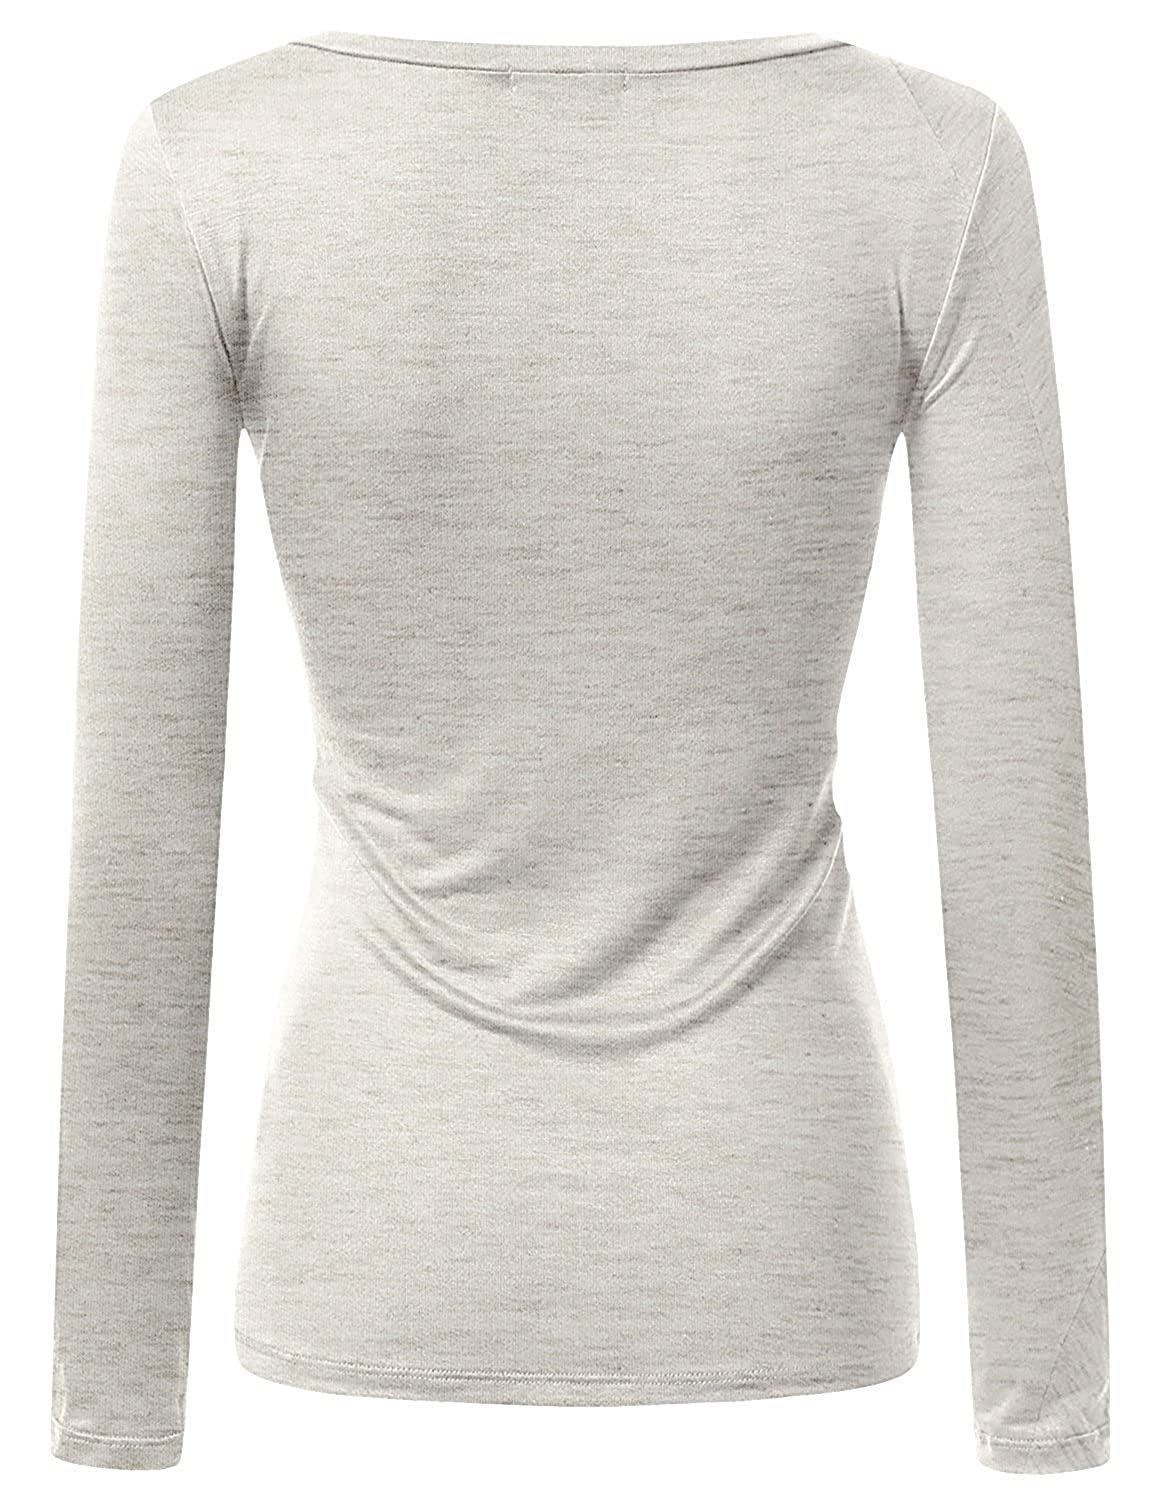 928e1e9a7d0a1e Active Women Basic Solid Plain V-Neck Casual Long Sleeve T Shirt Top,  3PK-Charcoal, Olive, Oatmeal, 2X-Large at Amazon Women's Clothing store: